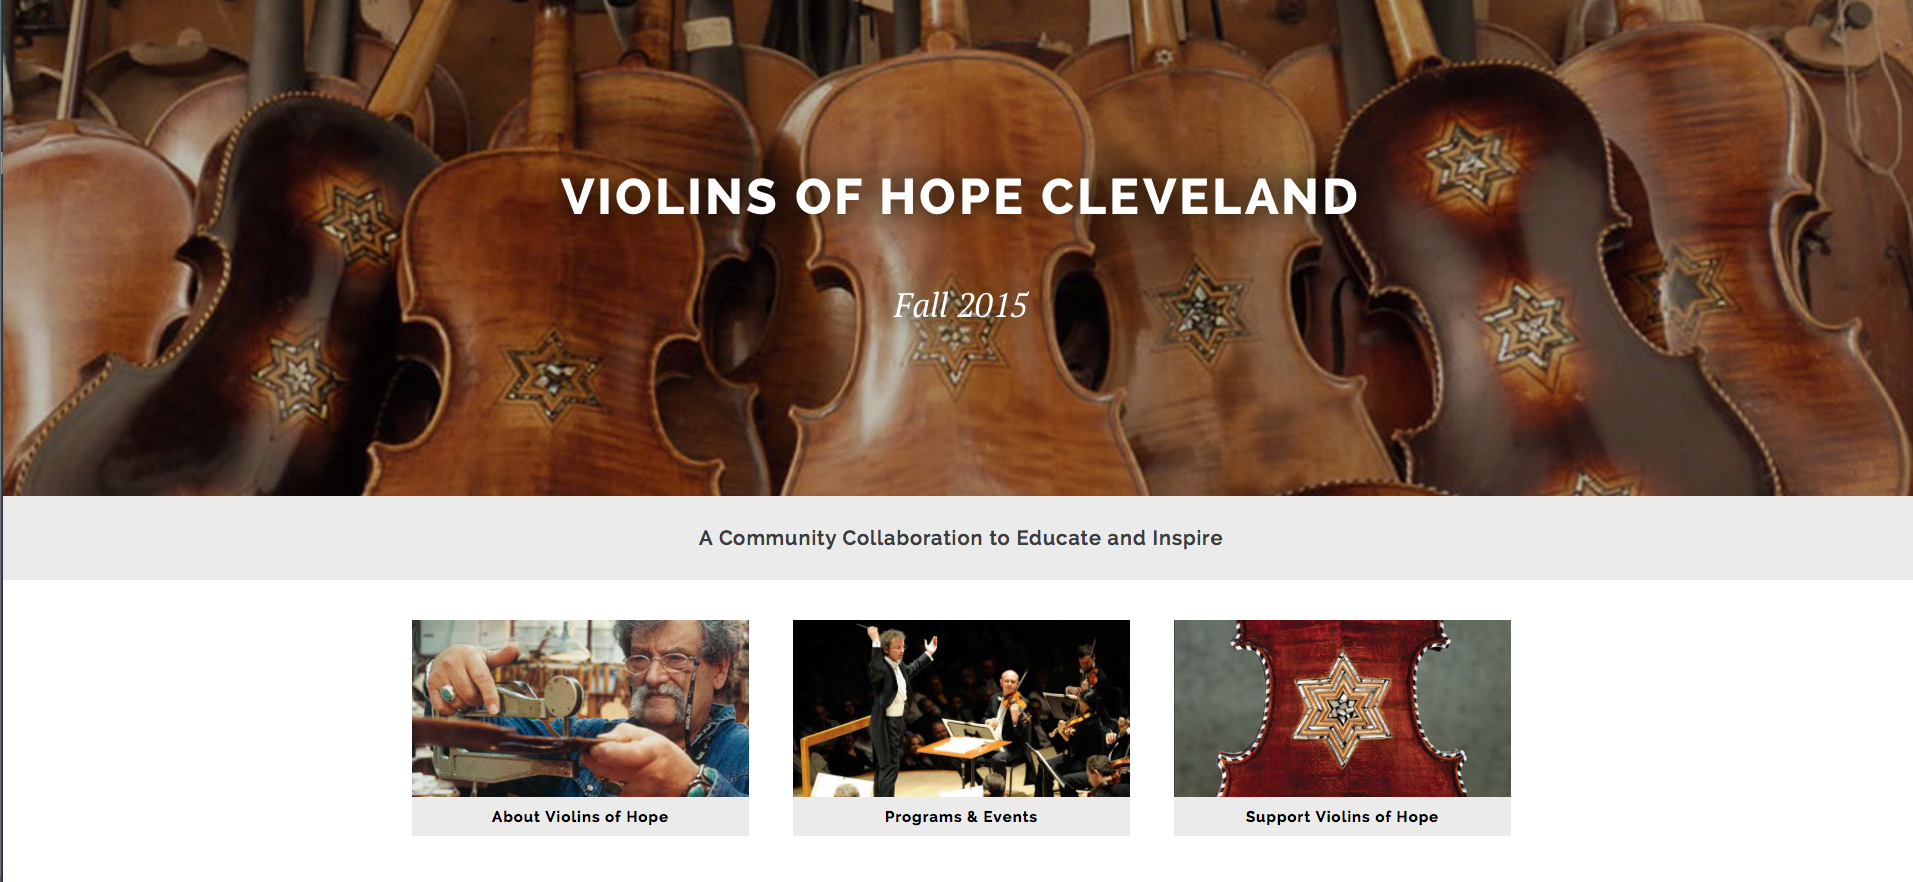 violins of hope cleveland